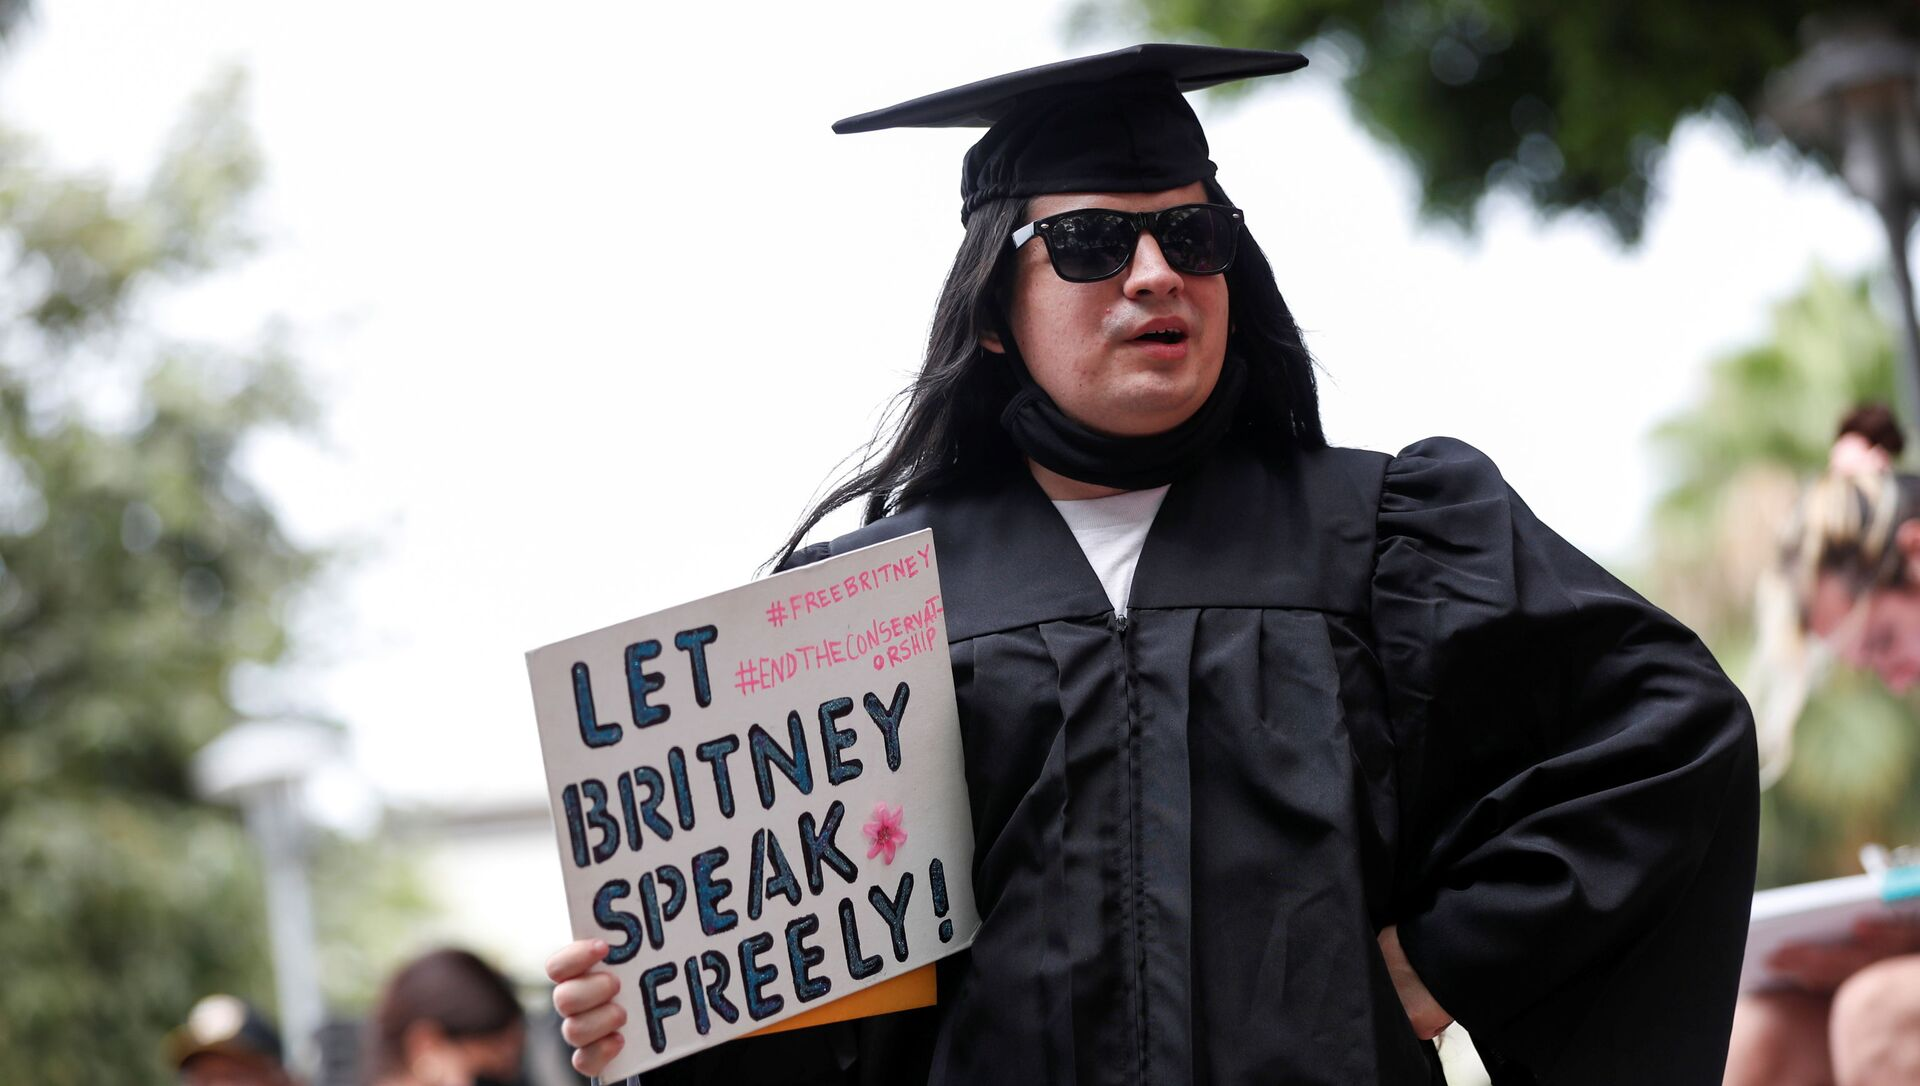 William Henry holds a sign in support of pop star Britney Spears on the day of a conservatorship case hearing at Stanley Mosk Courthouse in Los Angeles, California, U.S., July 26, 2021 - Sputnik International, 1920, 27.07.2021